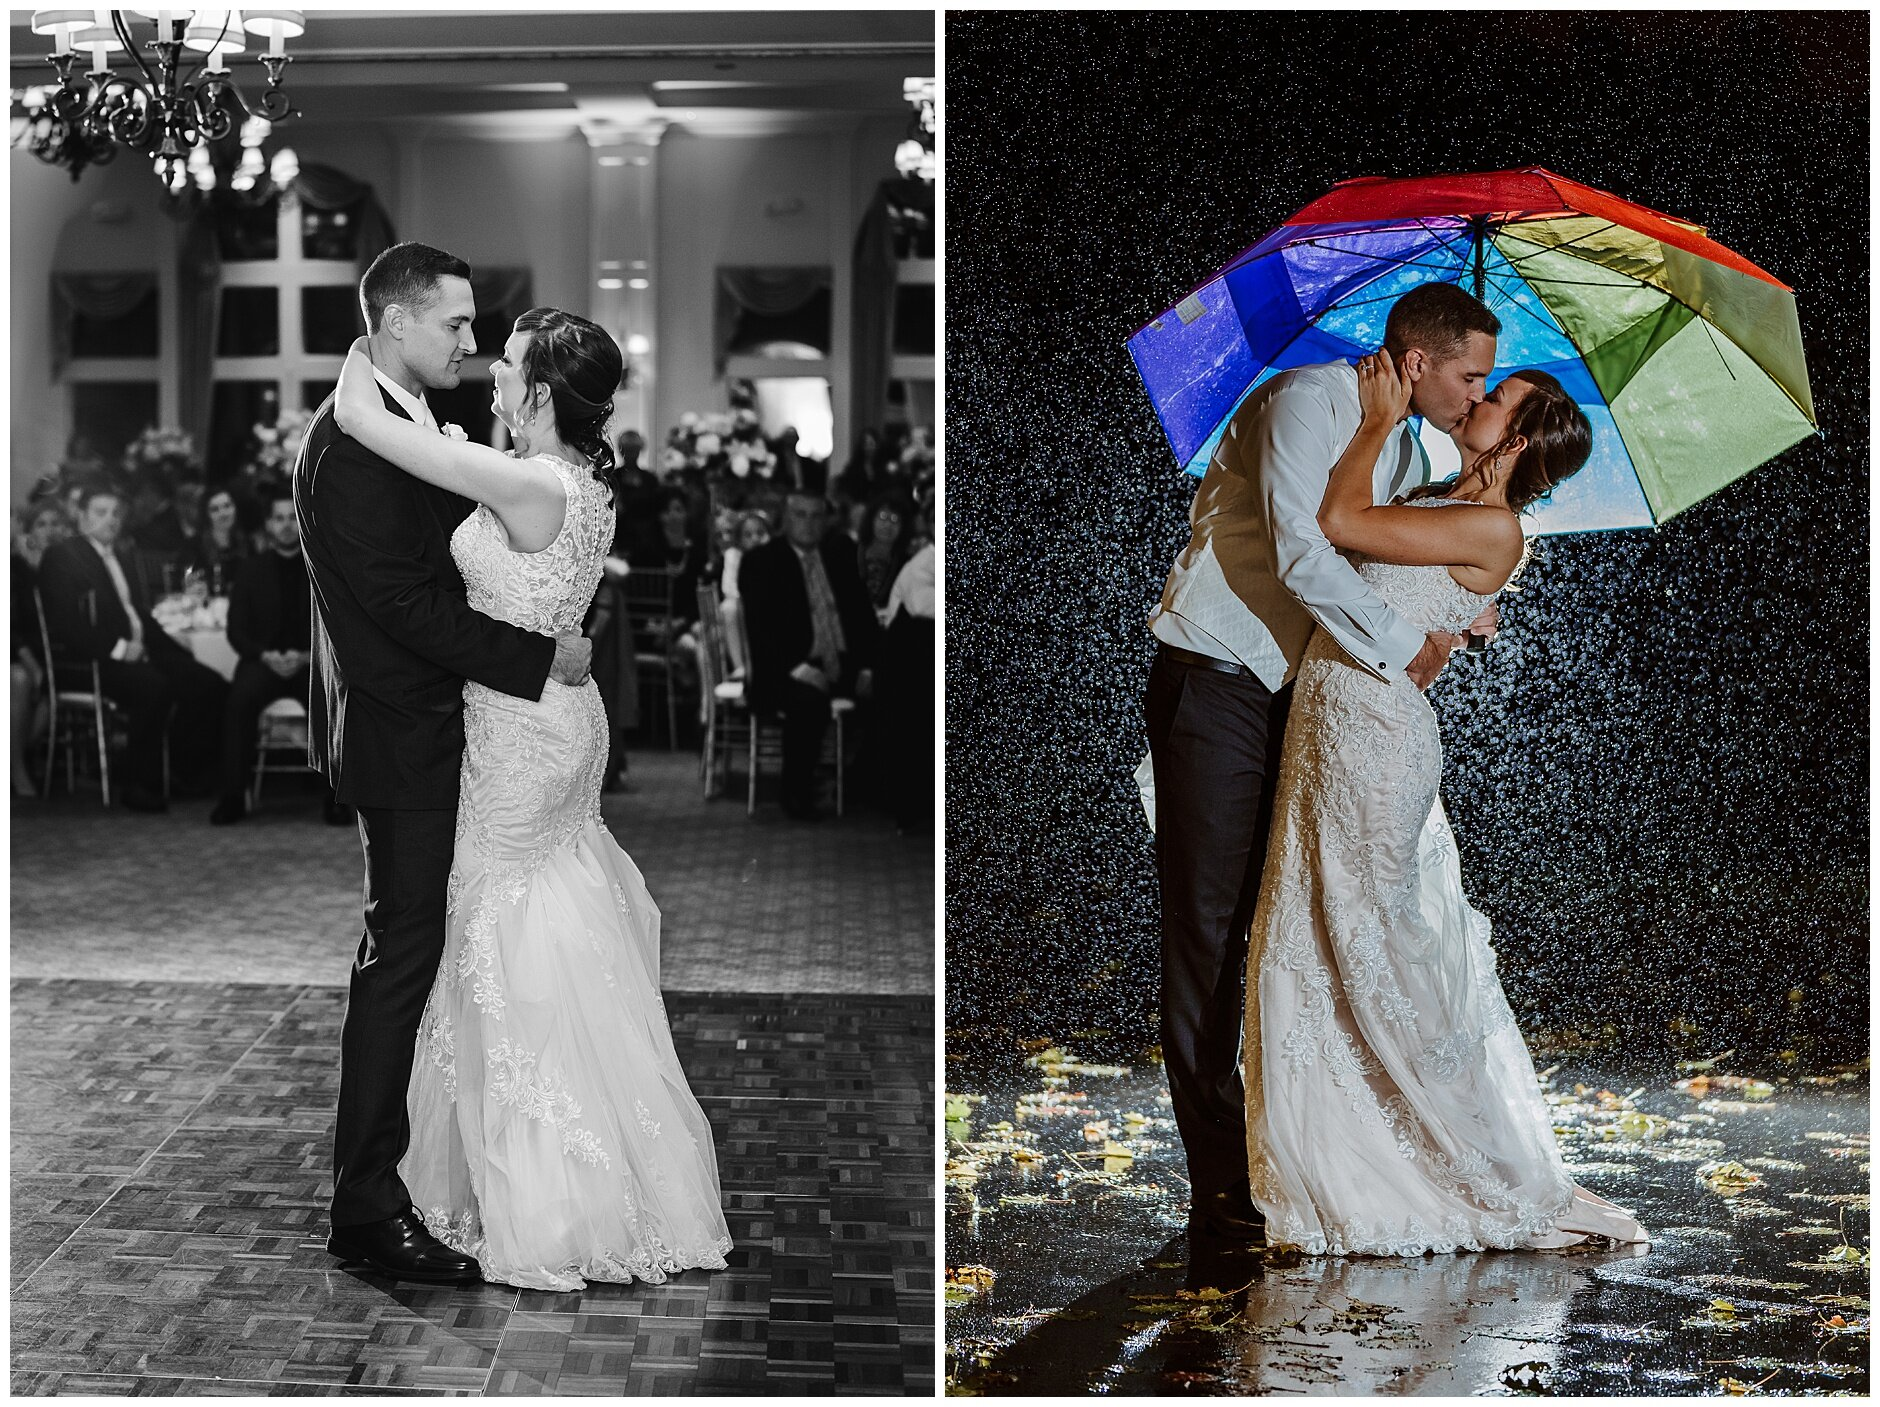 Rainy Wedding Day Night Picture Buffalo Wedding Photographer